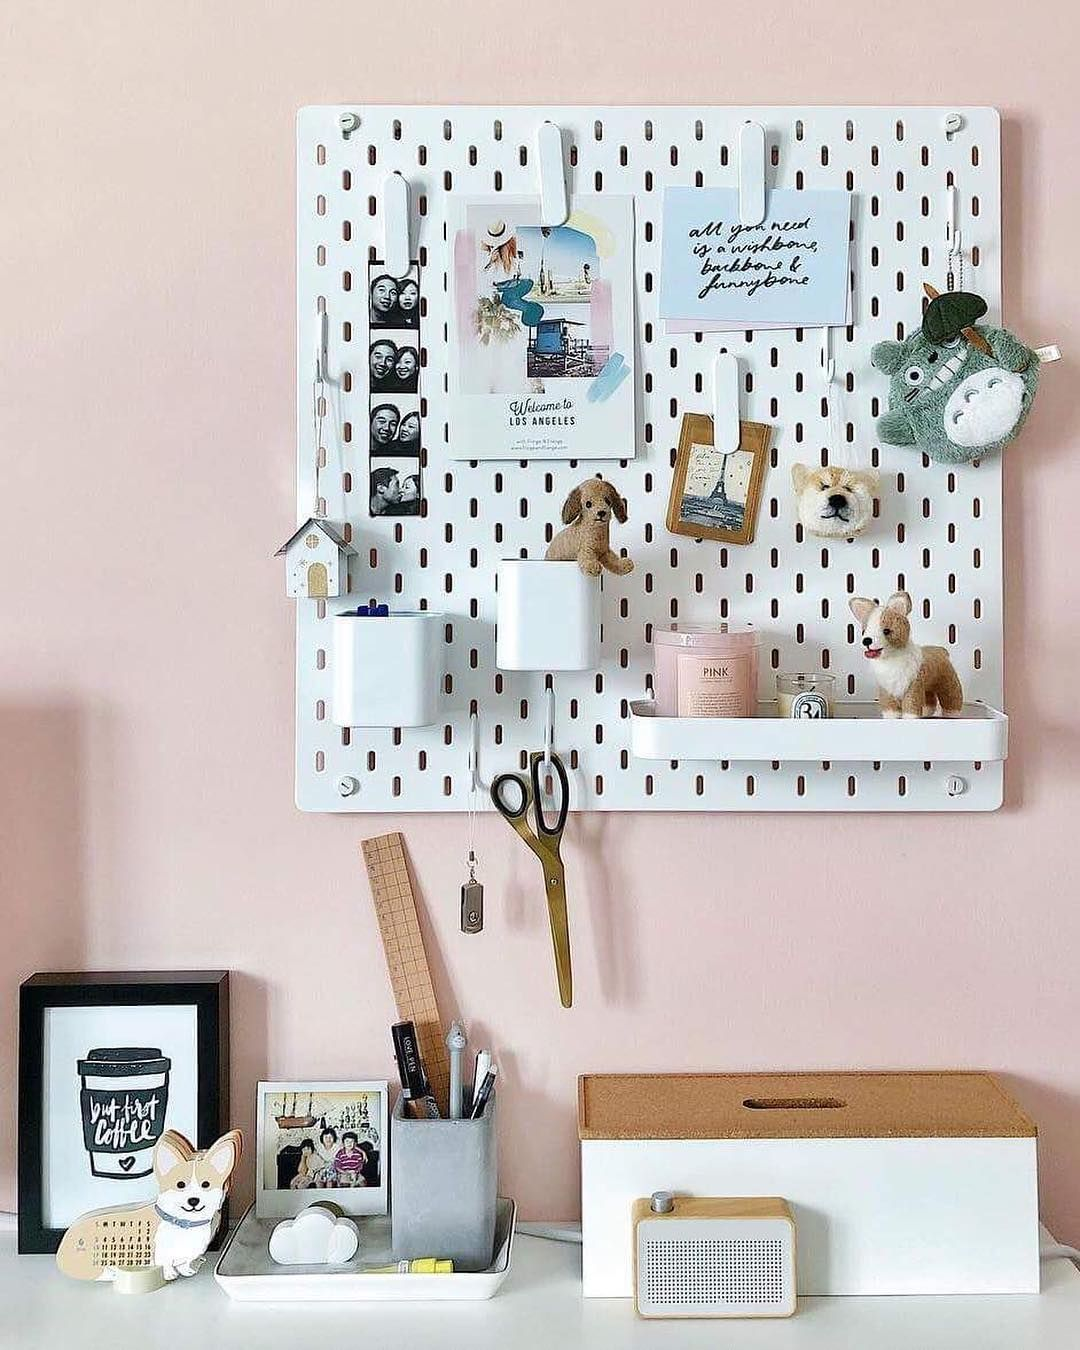 Ikea Malaysia On Instagram Now This Is Our Idea Of A Creative Work Space Dearchar Inspires Us Ikea Malaysia Ikea Home Office Office Inspiration Workspaces